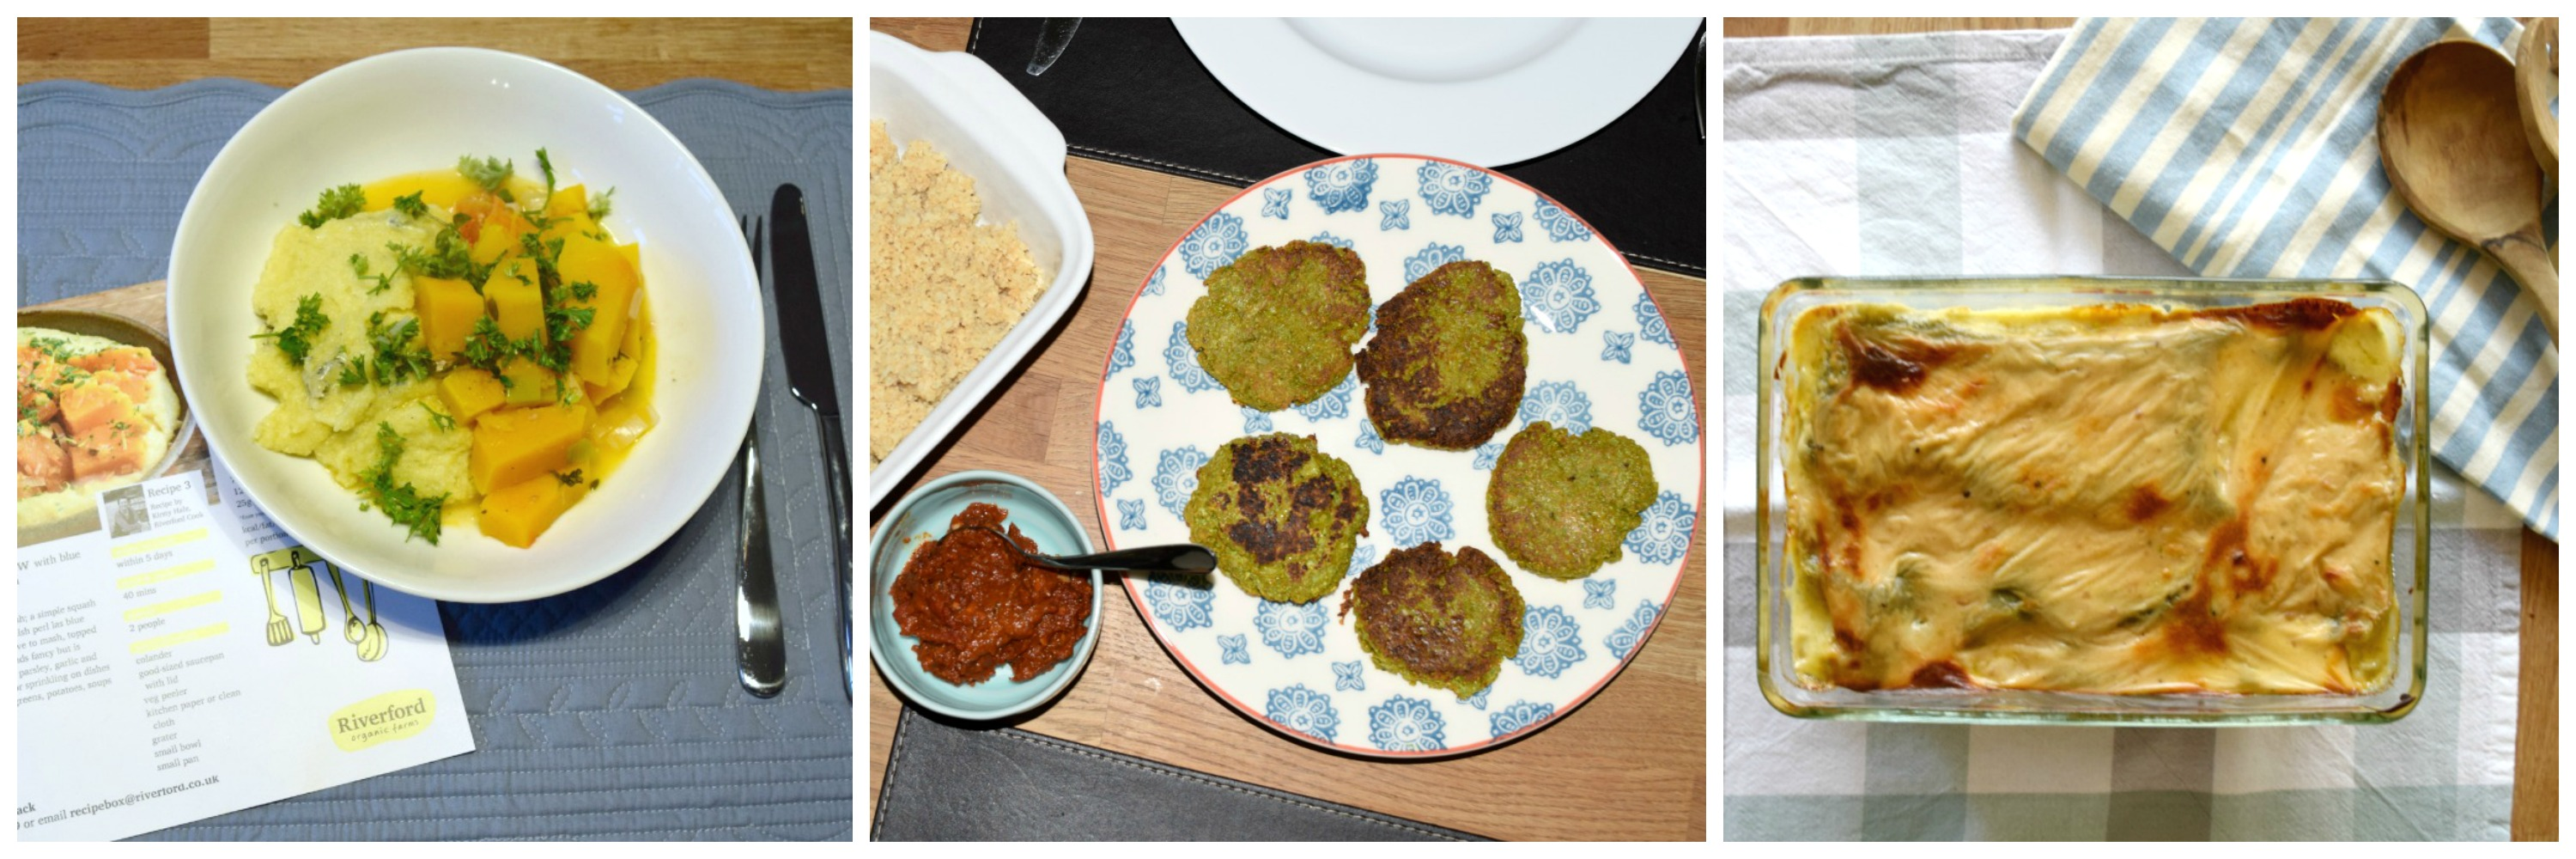 Vegetarian recipes from Riverford